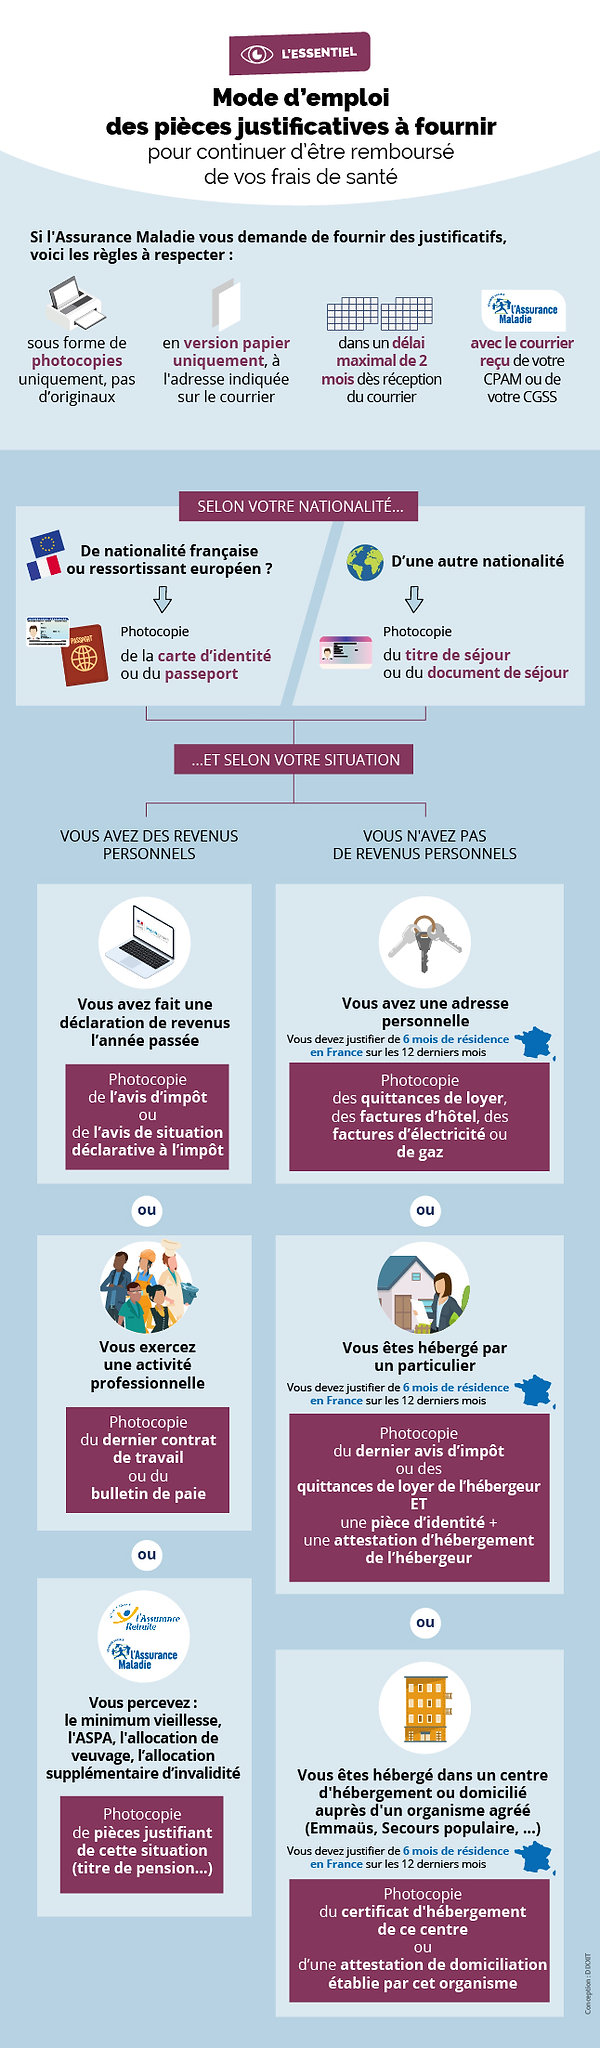 infographie-mode-emploi-pieces-justifica